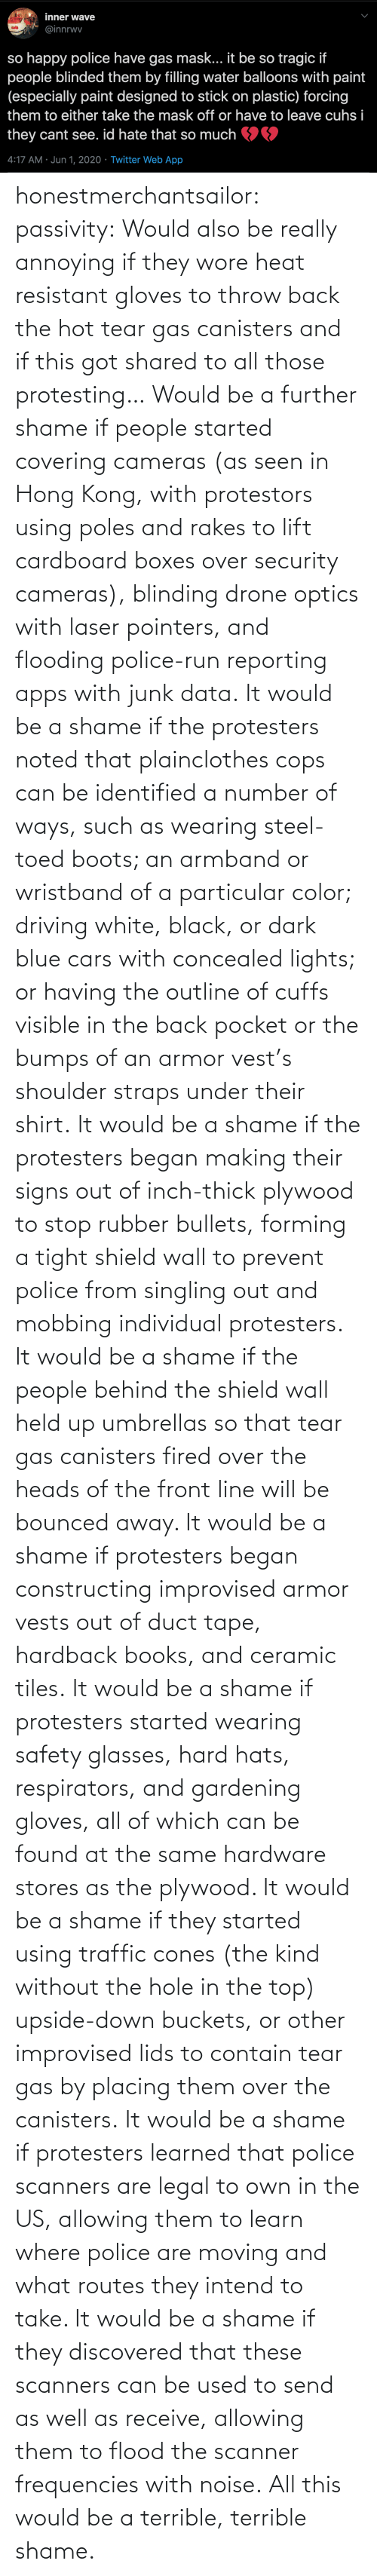 wall: honestmerchantsailor:  passivity: Would also be really annoying if they wore heat resistant gloves to throw back the hot tear gas canisters and if this got shared to all those protesting… Would be a further shame if people started covering cameras (as seen in Hong Kong, with protestors using poles and rakes to lift cardboard boxes over security cameras), blinding drone optics with laser pointers, and flooding police-run reporting apps with junk data. It would be a shame if the protesters noted that plainclothes cops can be identified a number of ways, such as wearing steel-toed boots; an armband or wristband of a particular color; driving white, black, or dark blue cars with concealed lights; or having the outline of cuffs visible in the back pocket or the bumps of an armor vest's shoulder straps under their shirt. It would be a shame if the protesters began making their signs out of inch-thick plywood to stop rubber bullets, forming a tight shield wall to prevent police from singling out and mobbing individual protesters. It would be a shame if the people behind the shield wall held up umbrellas so that tear gas canisters fired over the heads of the front line will be bounced away. It would be a shame if protesters began constructing improvised armor vests out of duct tape, hardback books, and ceramic tiles. It would be a shame if protesters started wearing safety glasses, hard hats, respirators, and gardening gloves, all of which can be found at the same hardware stores as the plywood. It would be a shame if they started using traffic cones (the kind without the hole in the top) upside-down buckets, or other improvised lids to contain tear gas by placing them over the canisters. It would be a shame if protesters learned that police scanners are legal to own in the US, allowing them to learn where police are moving and what routes they intend to take. It would be a shame if they discovered that these scanners can be used to send as well as receive, allowing them to flood the scanner frequencies with noise. All this would be a terrible, terrible shame.